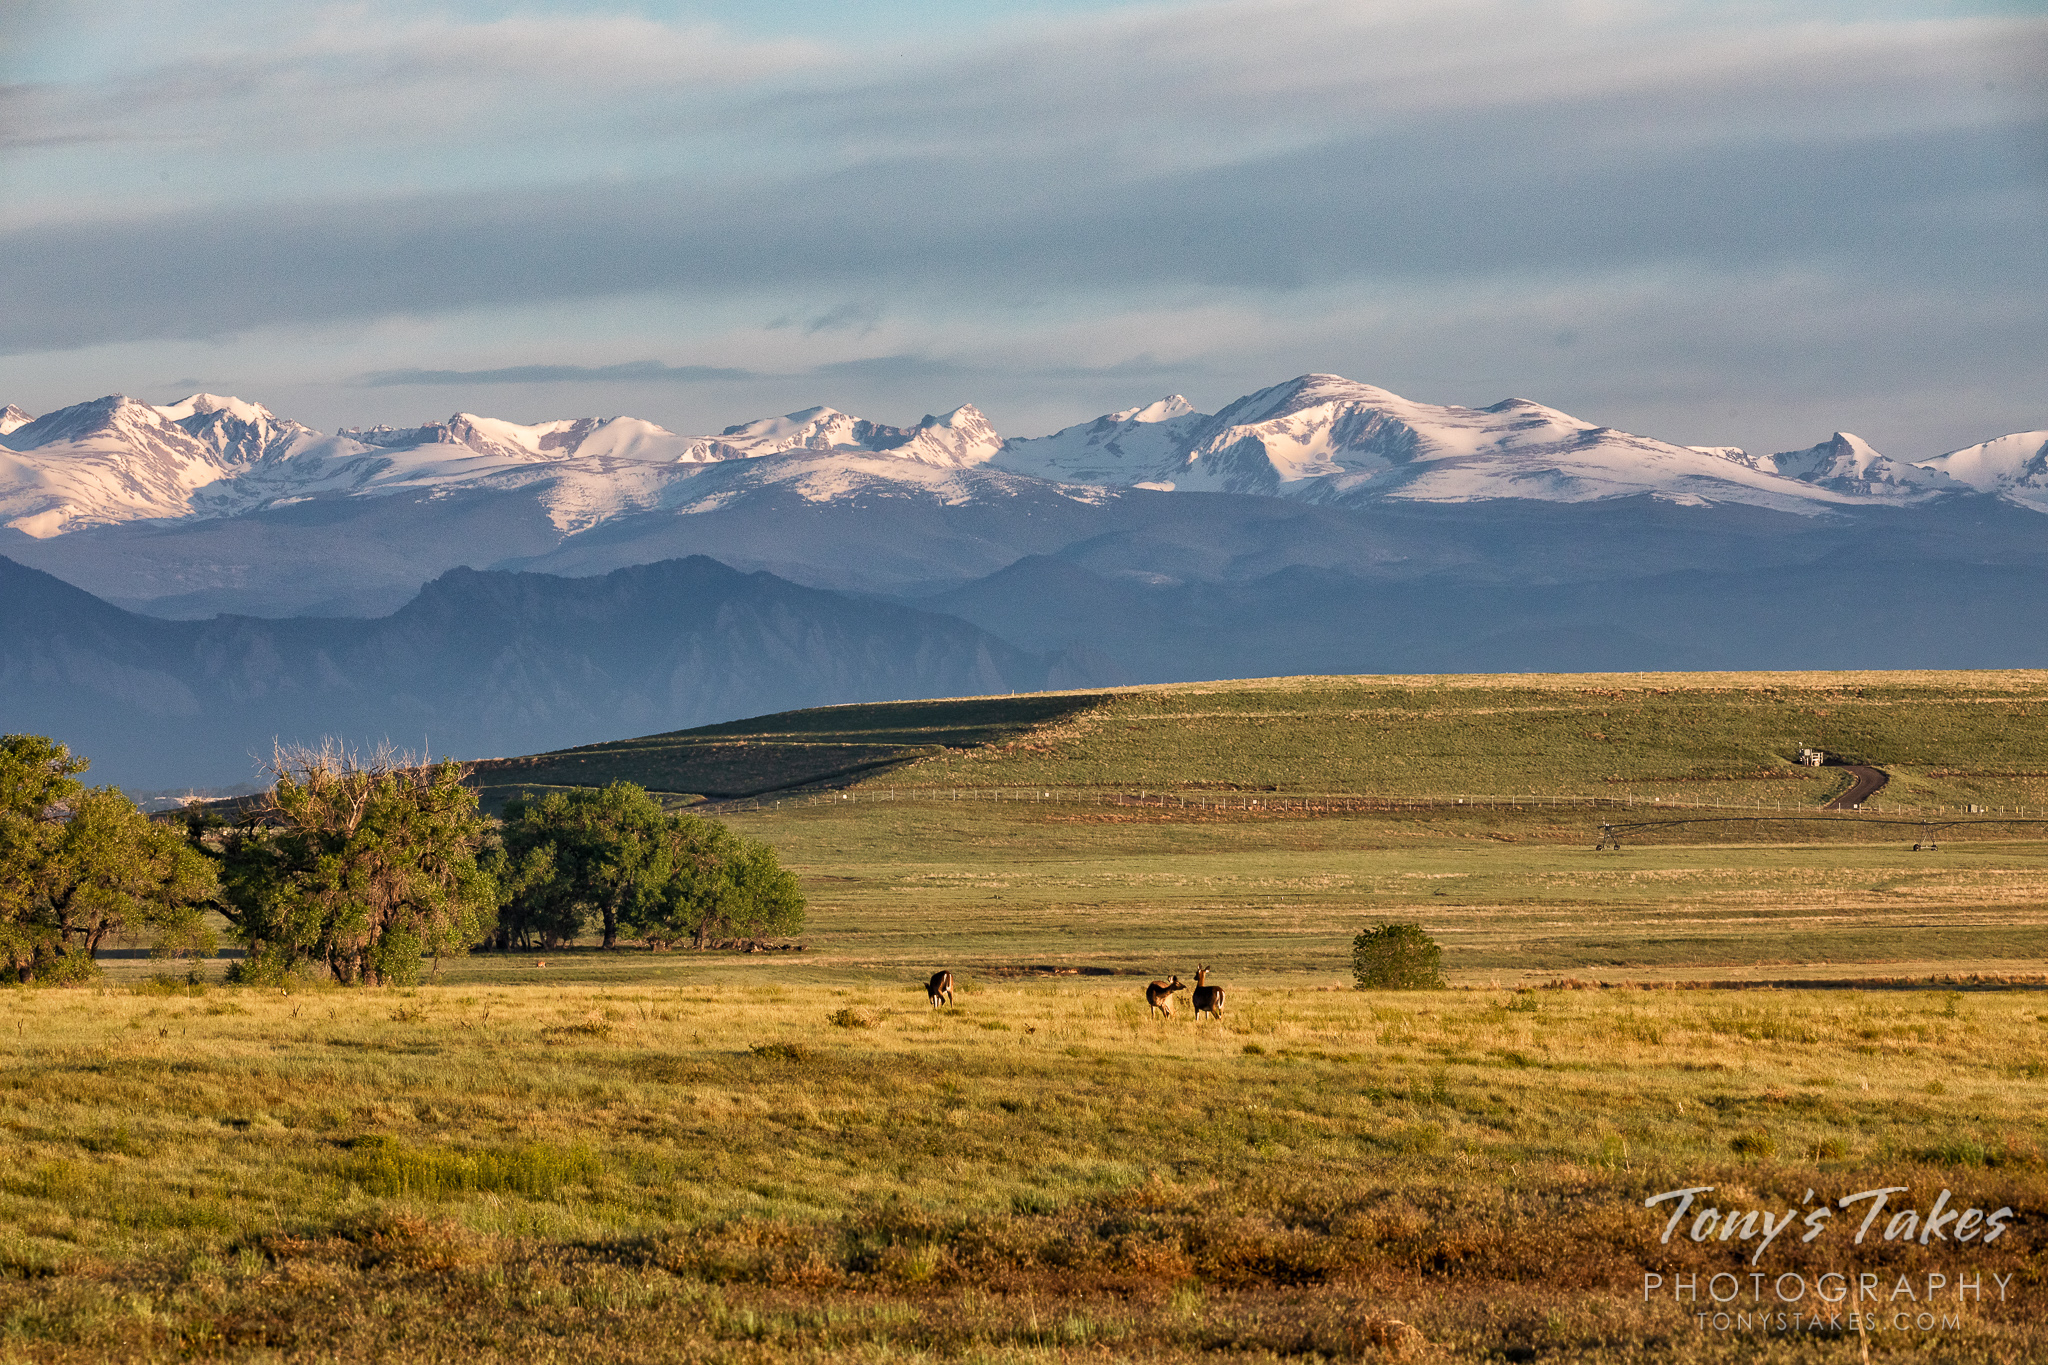 The golden Great Plains with snow-covered Rocky Mountains behind them. (© Tony's Takes)